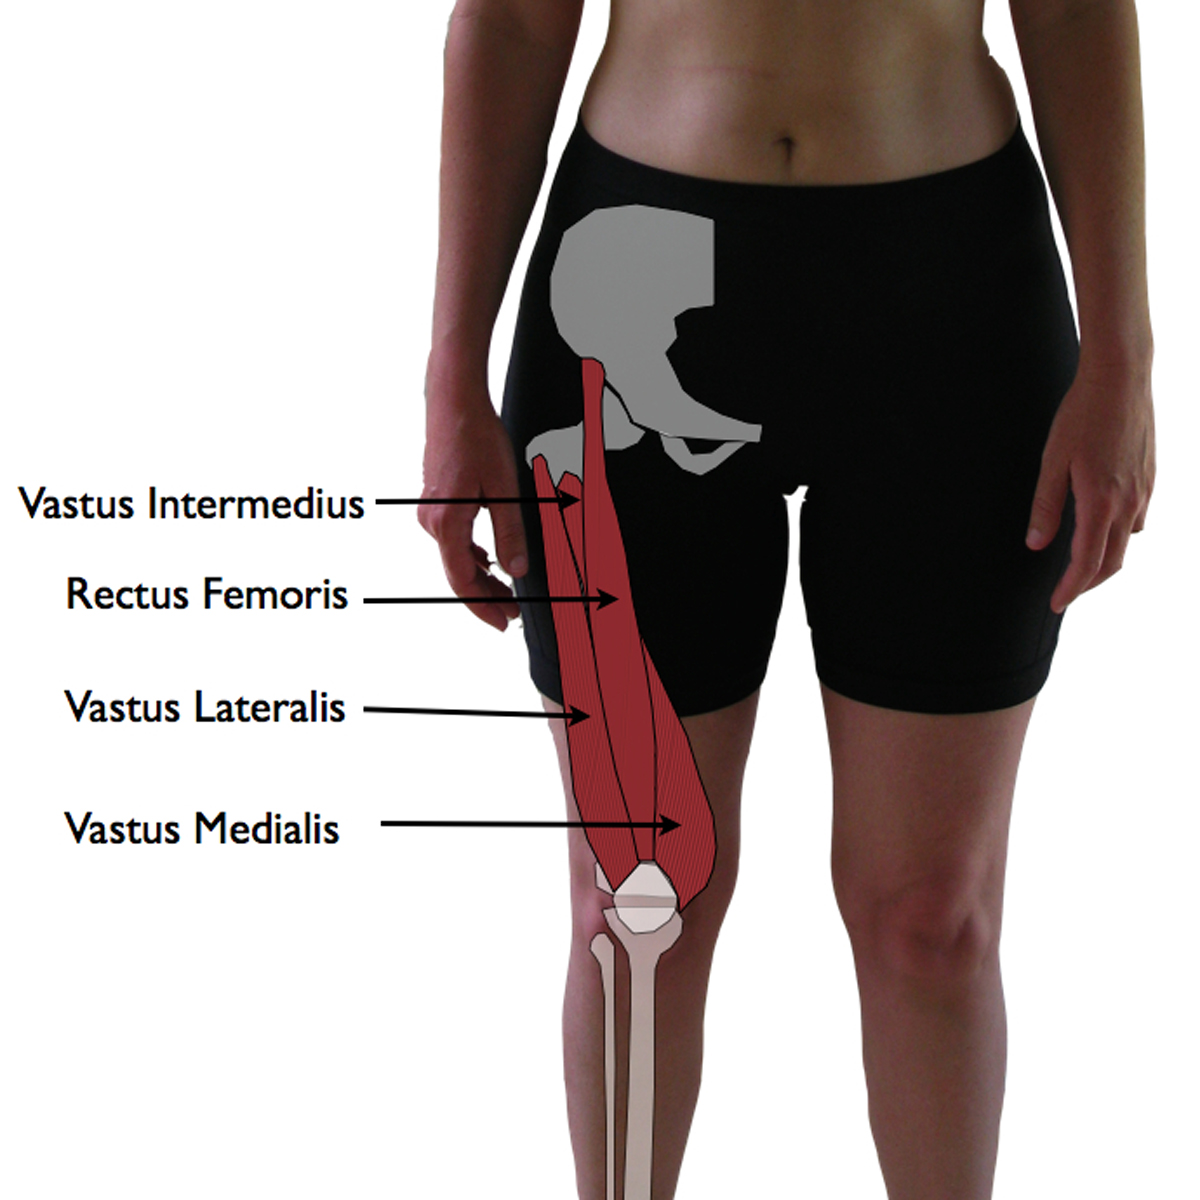 how to find vastus lateralis injection site